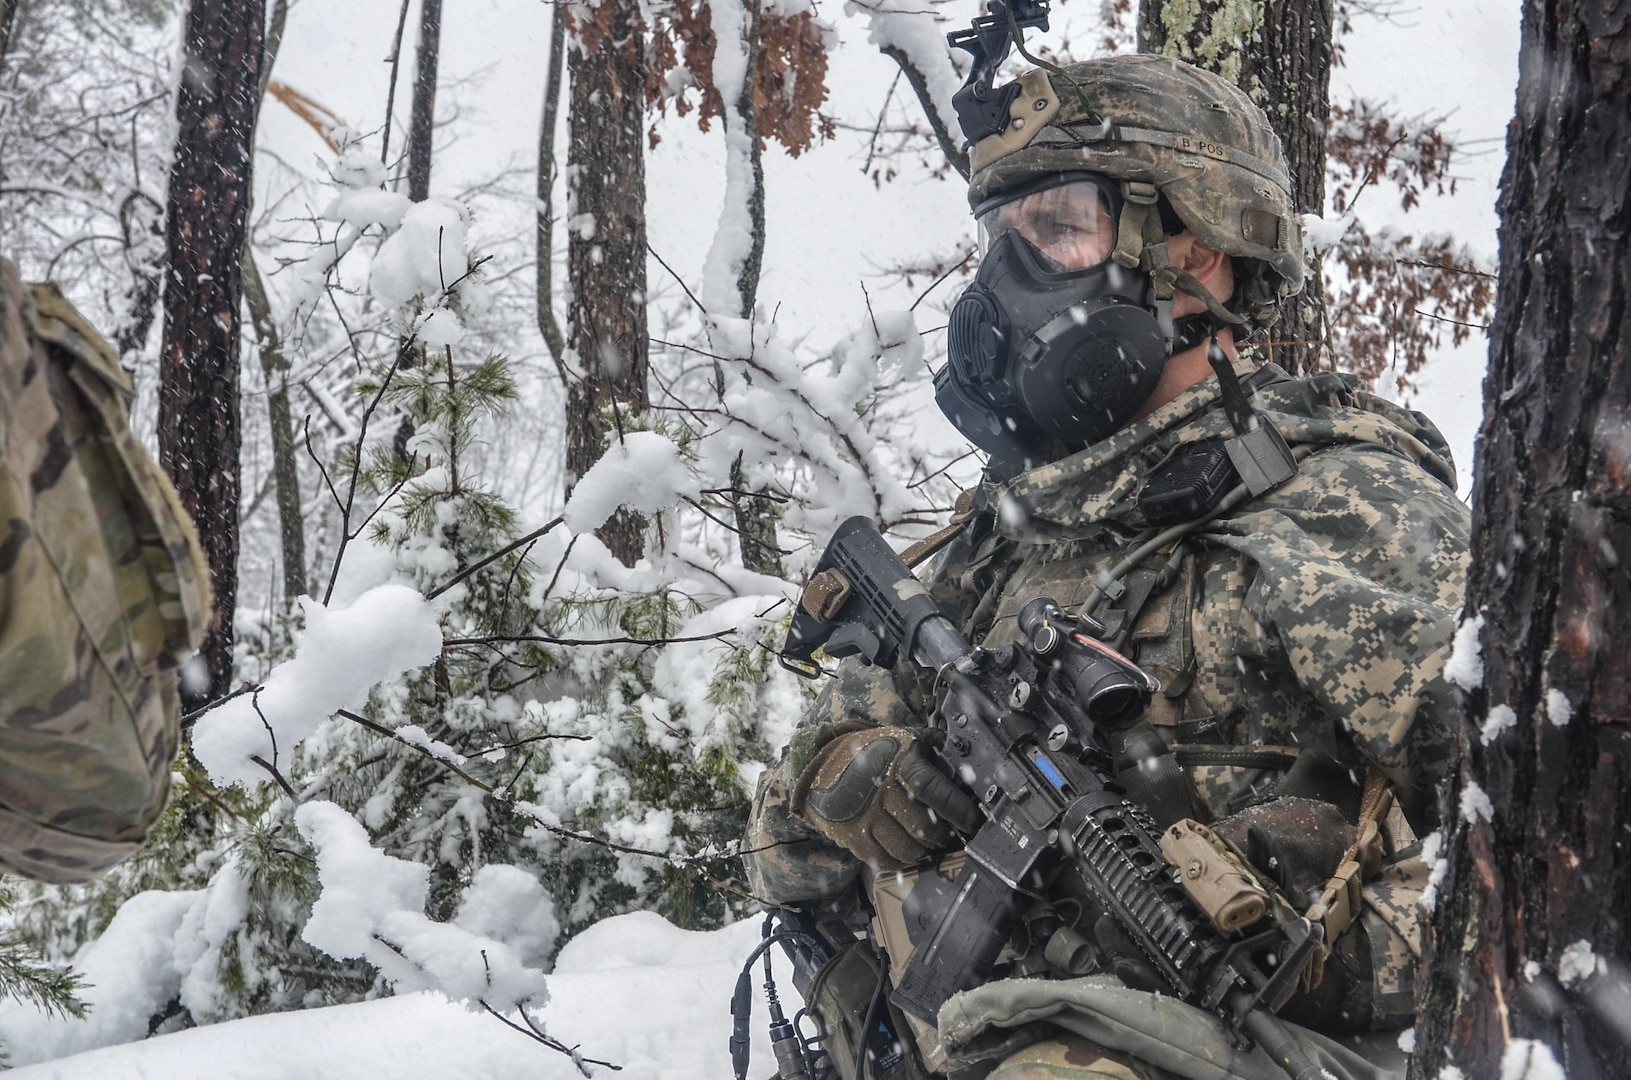 Paratrooper assigned to Charlie Company, 1st Battalion, 508th Parachute Infantry Regiment, provides security outside subway tunnel at Fort A.P. Hill, Virginia, March 21, 2018 (U.S. Army)